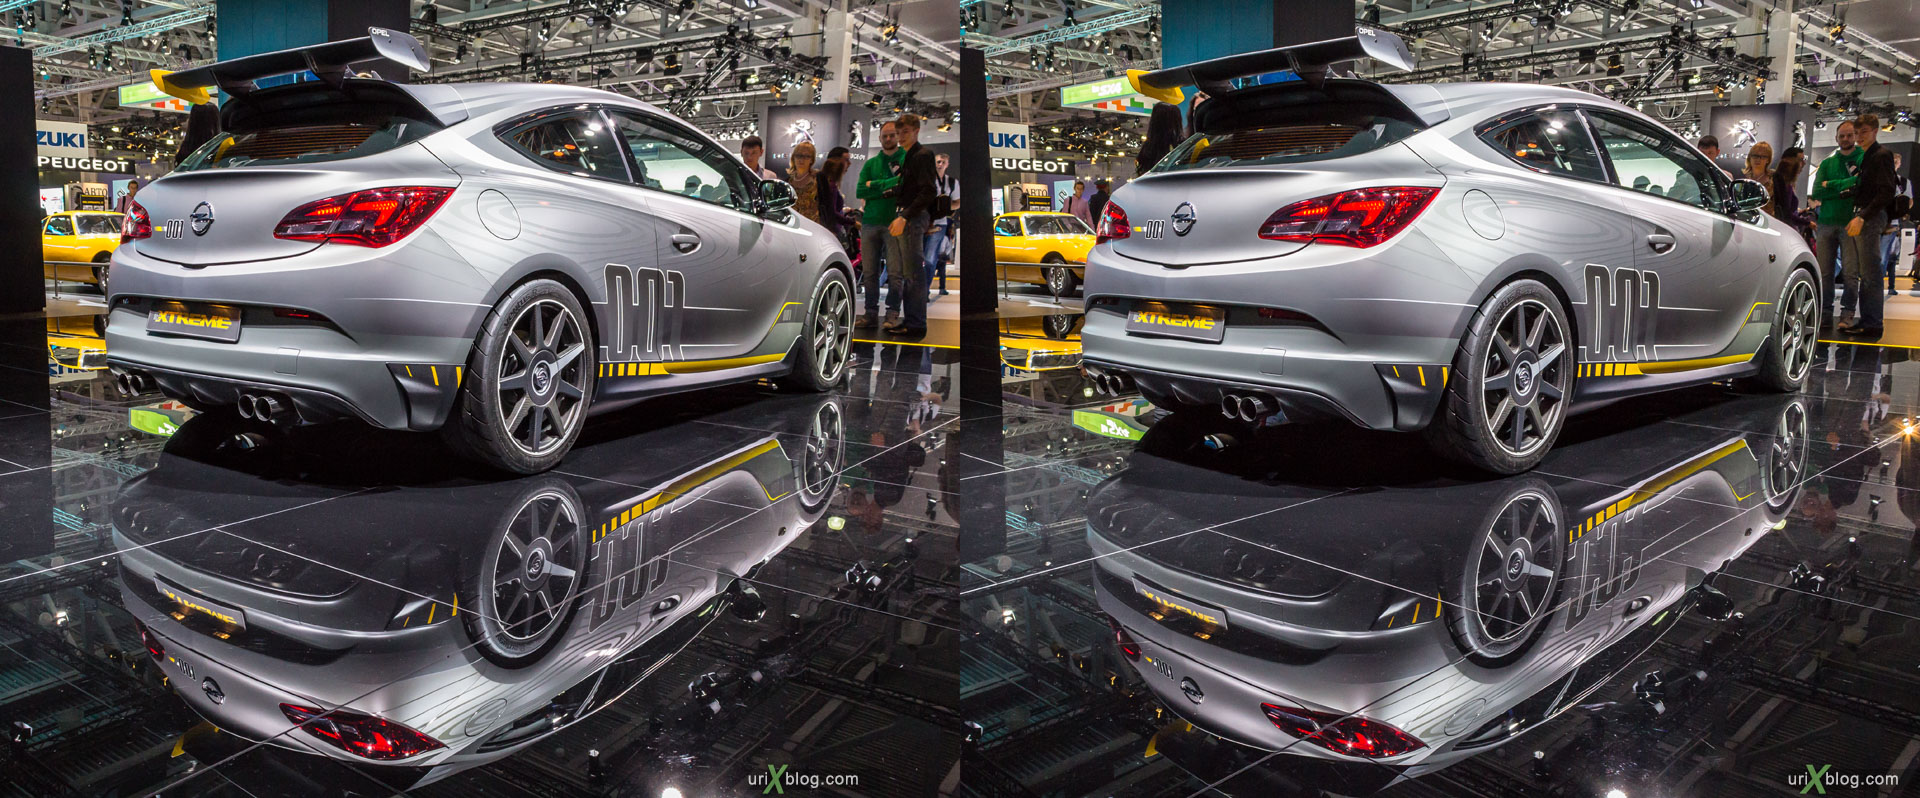 Opel Xtreme, Moscow International Automobile Salon 2014, MIAS 2014, girls, models, Crocus Expo, Moscow, Russia, 3D, stereo pair, cross-eyed, crossview, cross view stereo pair, stereoscopic, 2014